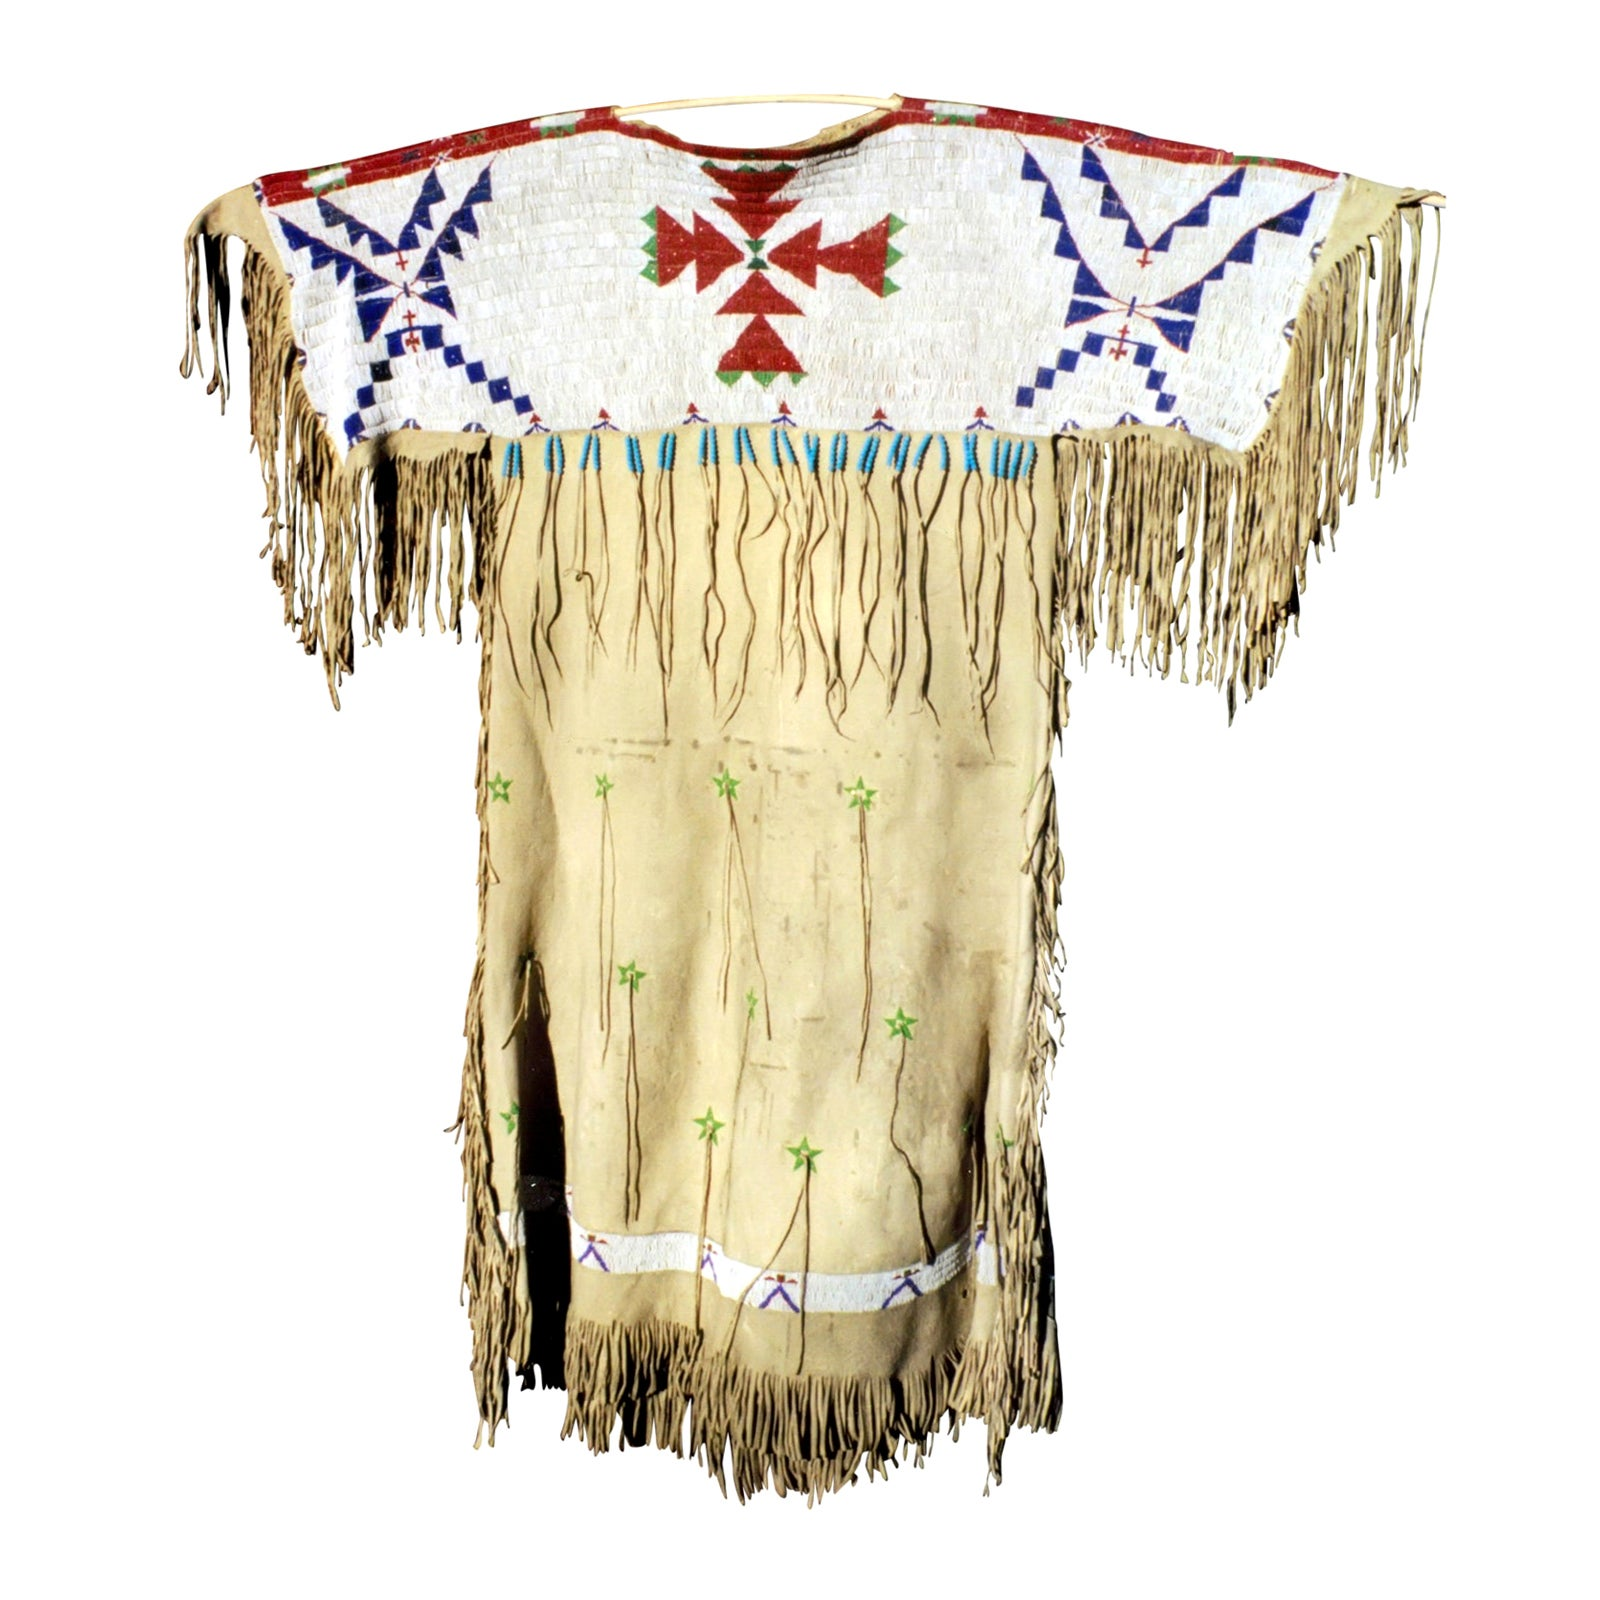 Impressive 1870s Arapaho/Sioux Beaded Hide Dress